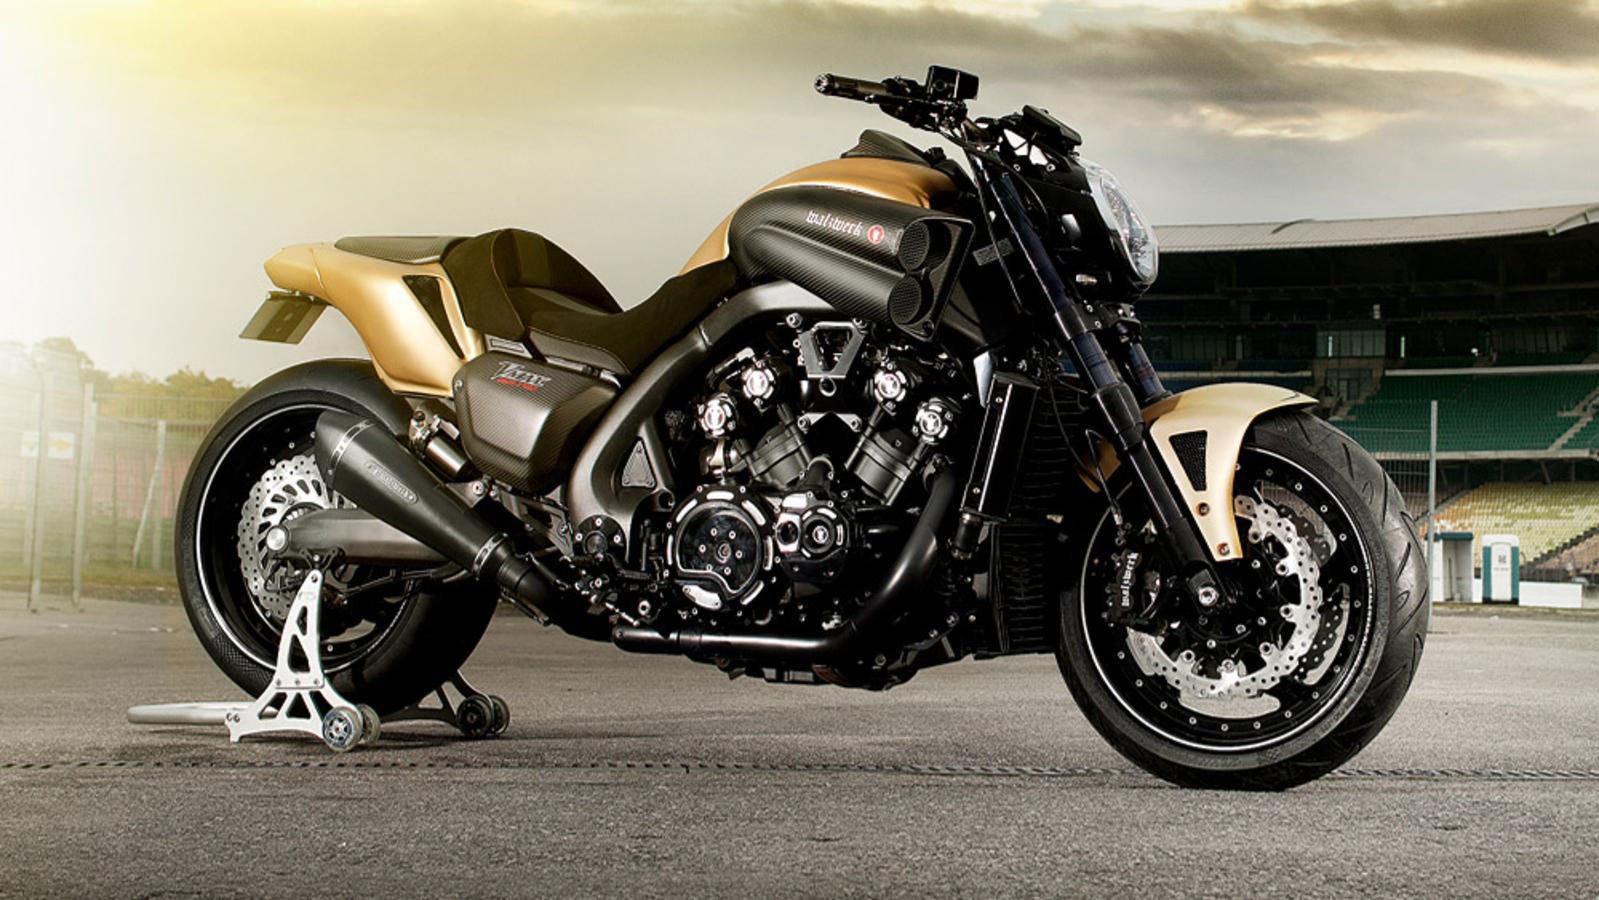 Yamaha VMAX Hyper Modified Marcus Walz 2013 images #92096